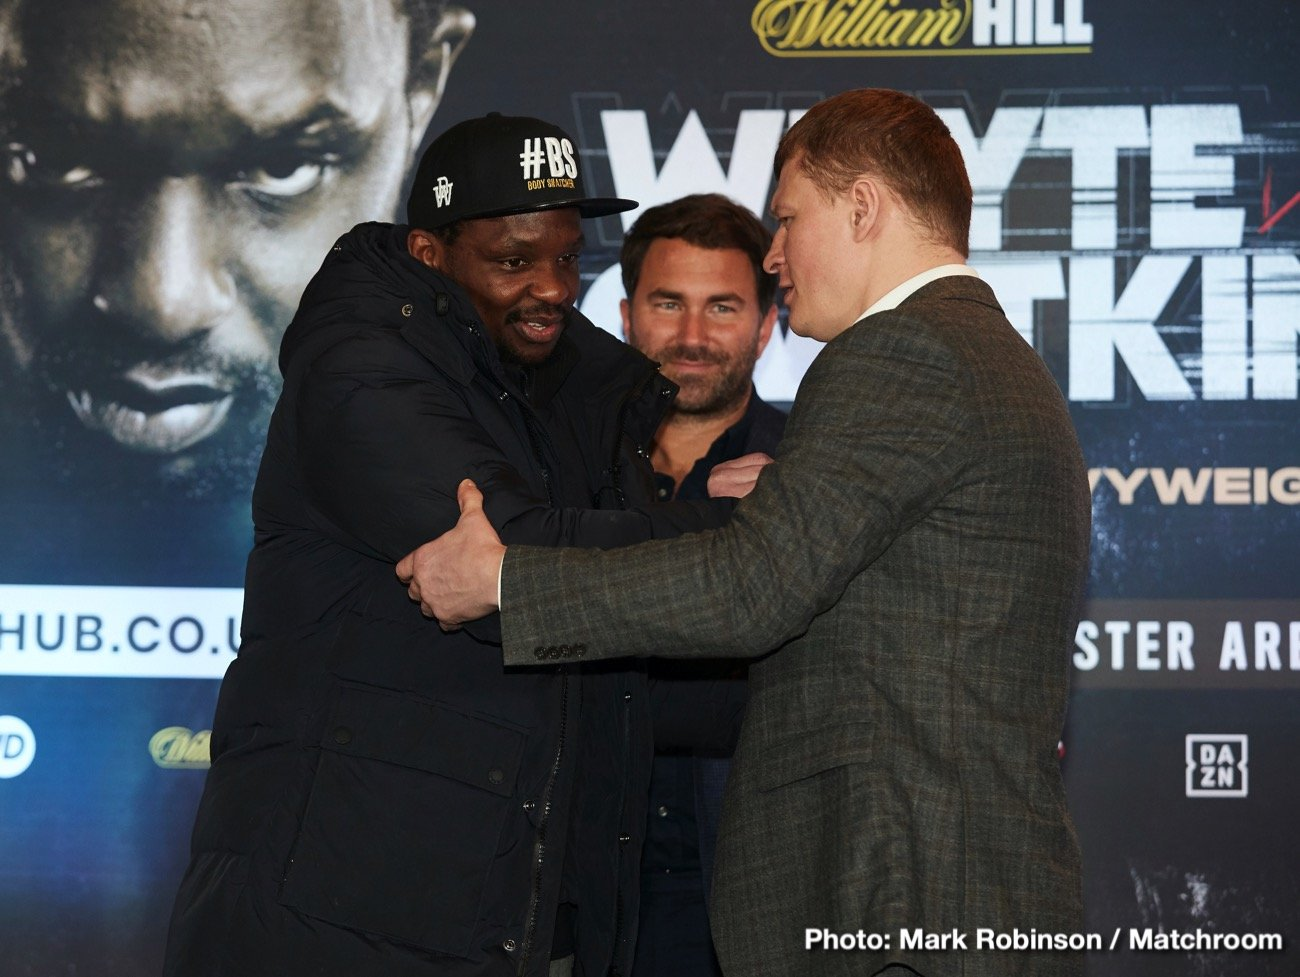 Alexander Povetkin - Dillian Whyte had to settle for a fight against Alexander Povetkin for May 2 after former heavyweight champion Andy Ruiz Jr. turned down two offers to fight him. Whyte (27-1, 18 KOs) is still pretty bitter about Ruiz saying no to his offers, and he figures that he just wants to fight an old heavyweight in 38-year-old Chris Arreola next in a tune-up.